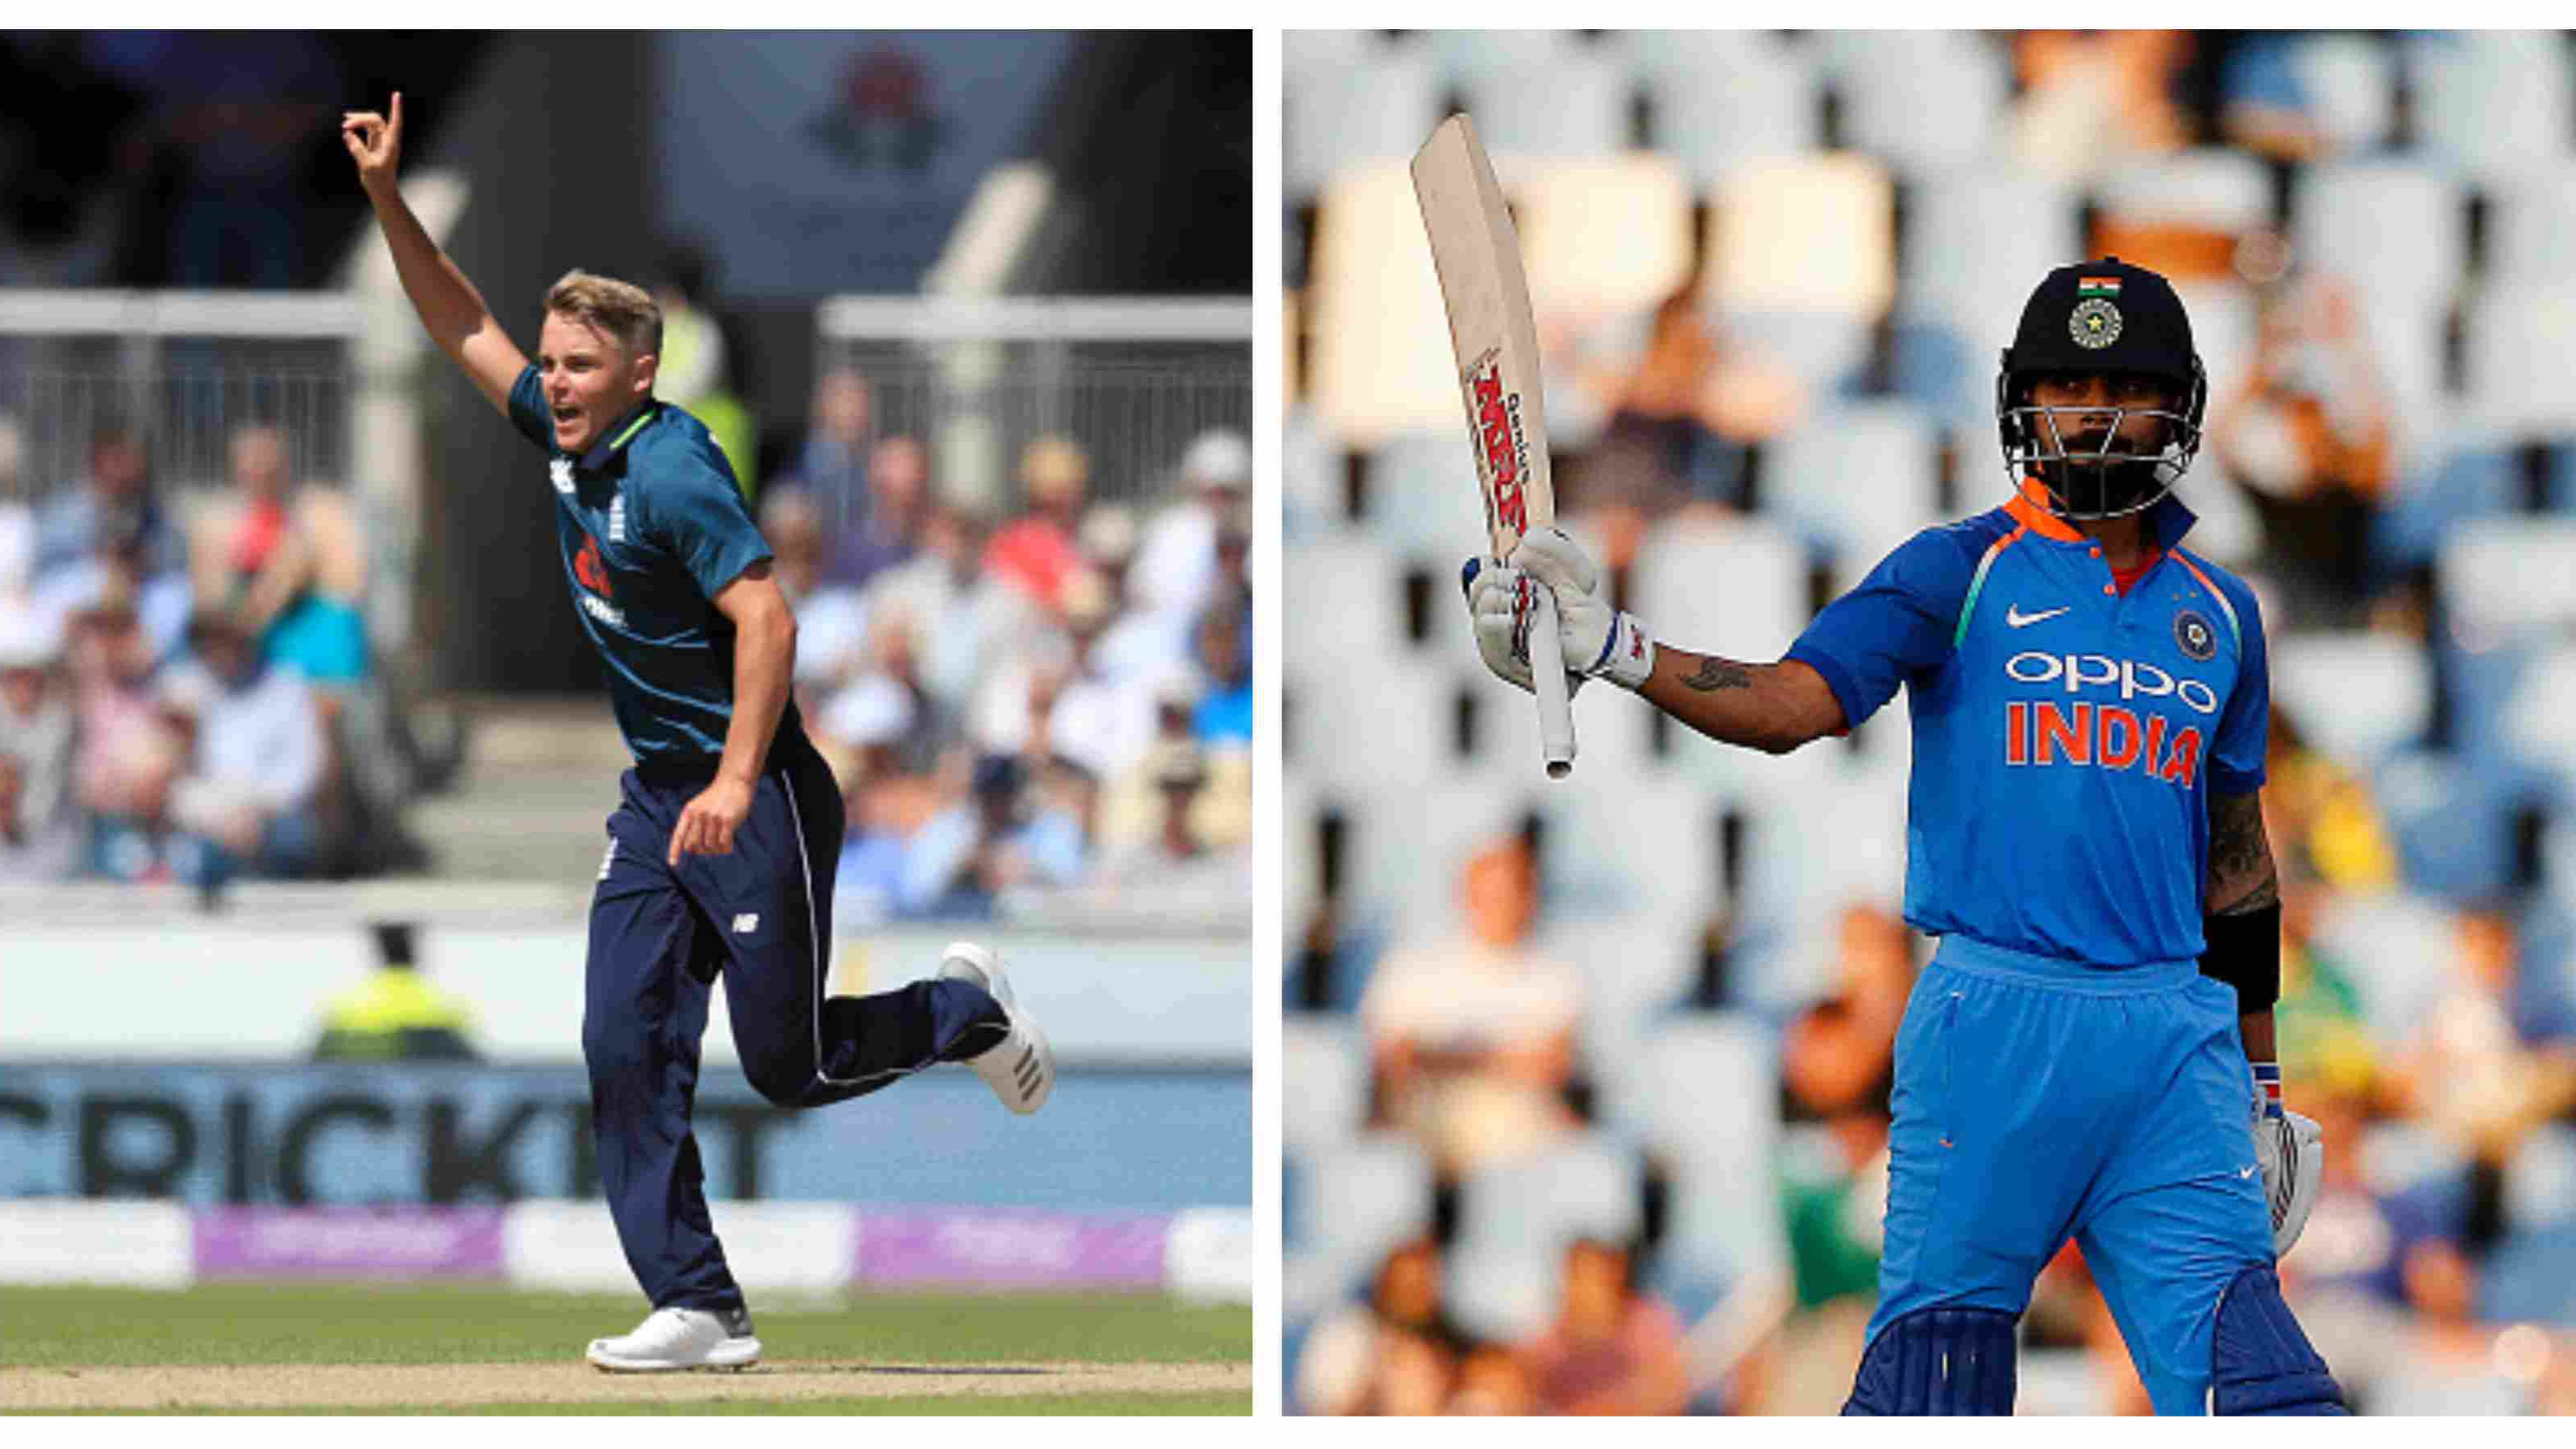 ENG v IND 2018: Sam Curran keen to test himself against Virat Kohli